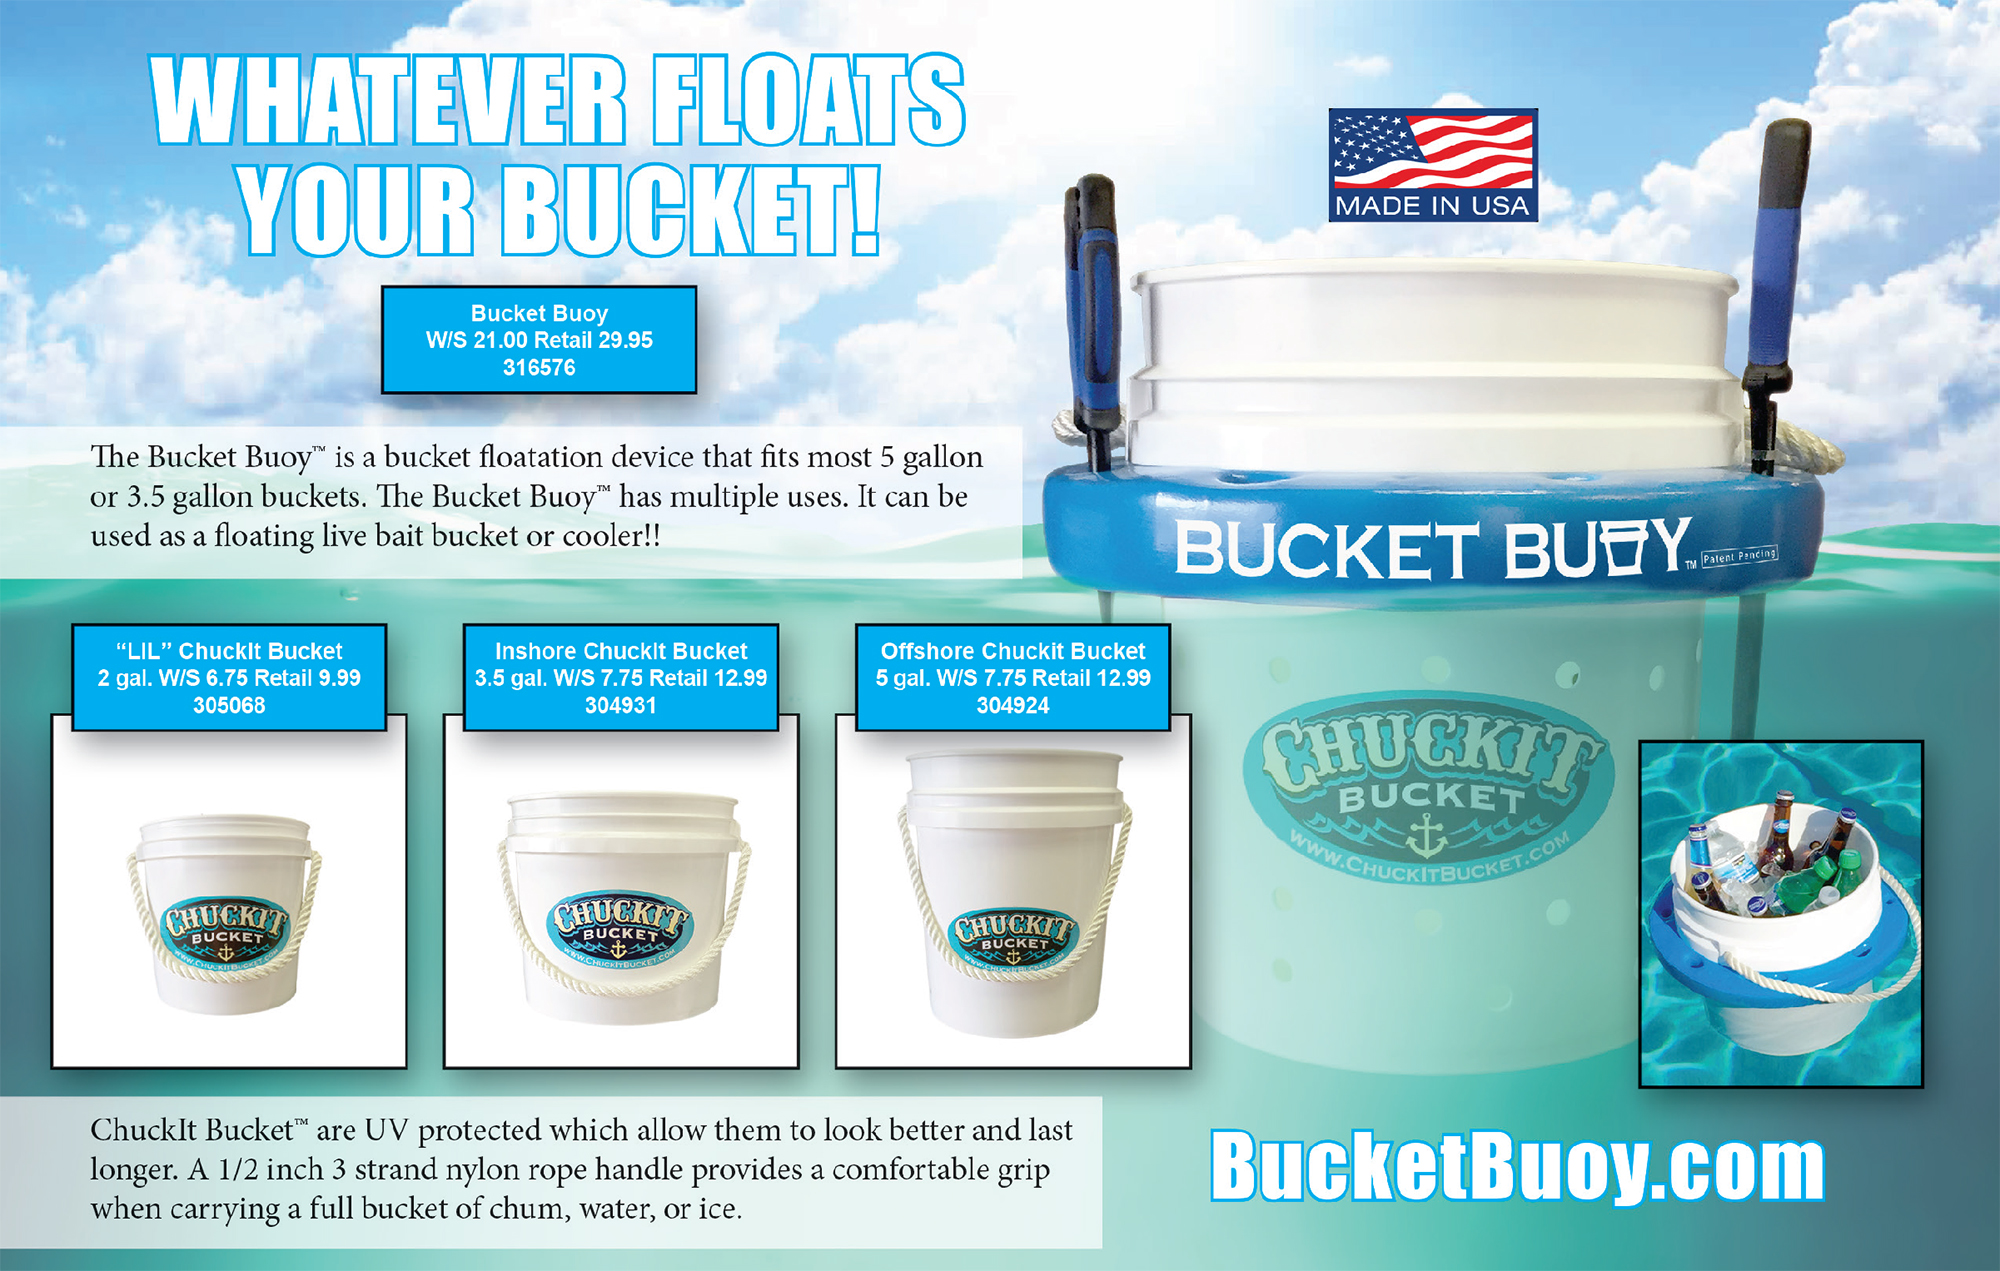 Bucket-Buoy-CAD-2-UP copy